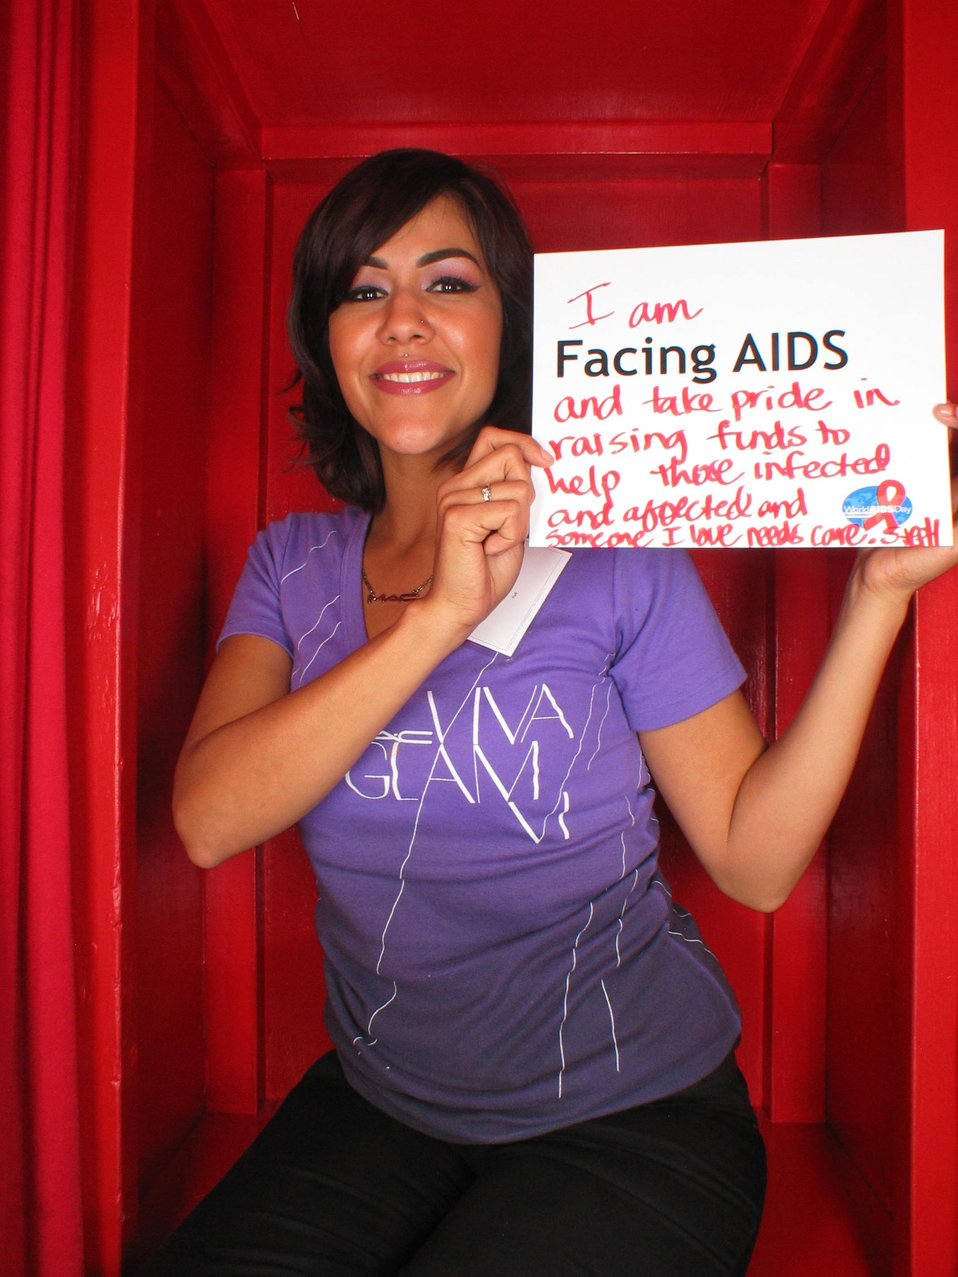 I am Facing AIDS and take pride in raising funds to kep those infected and affected and someone I love needs care.